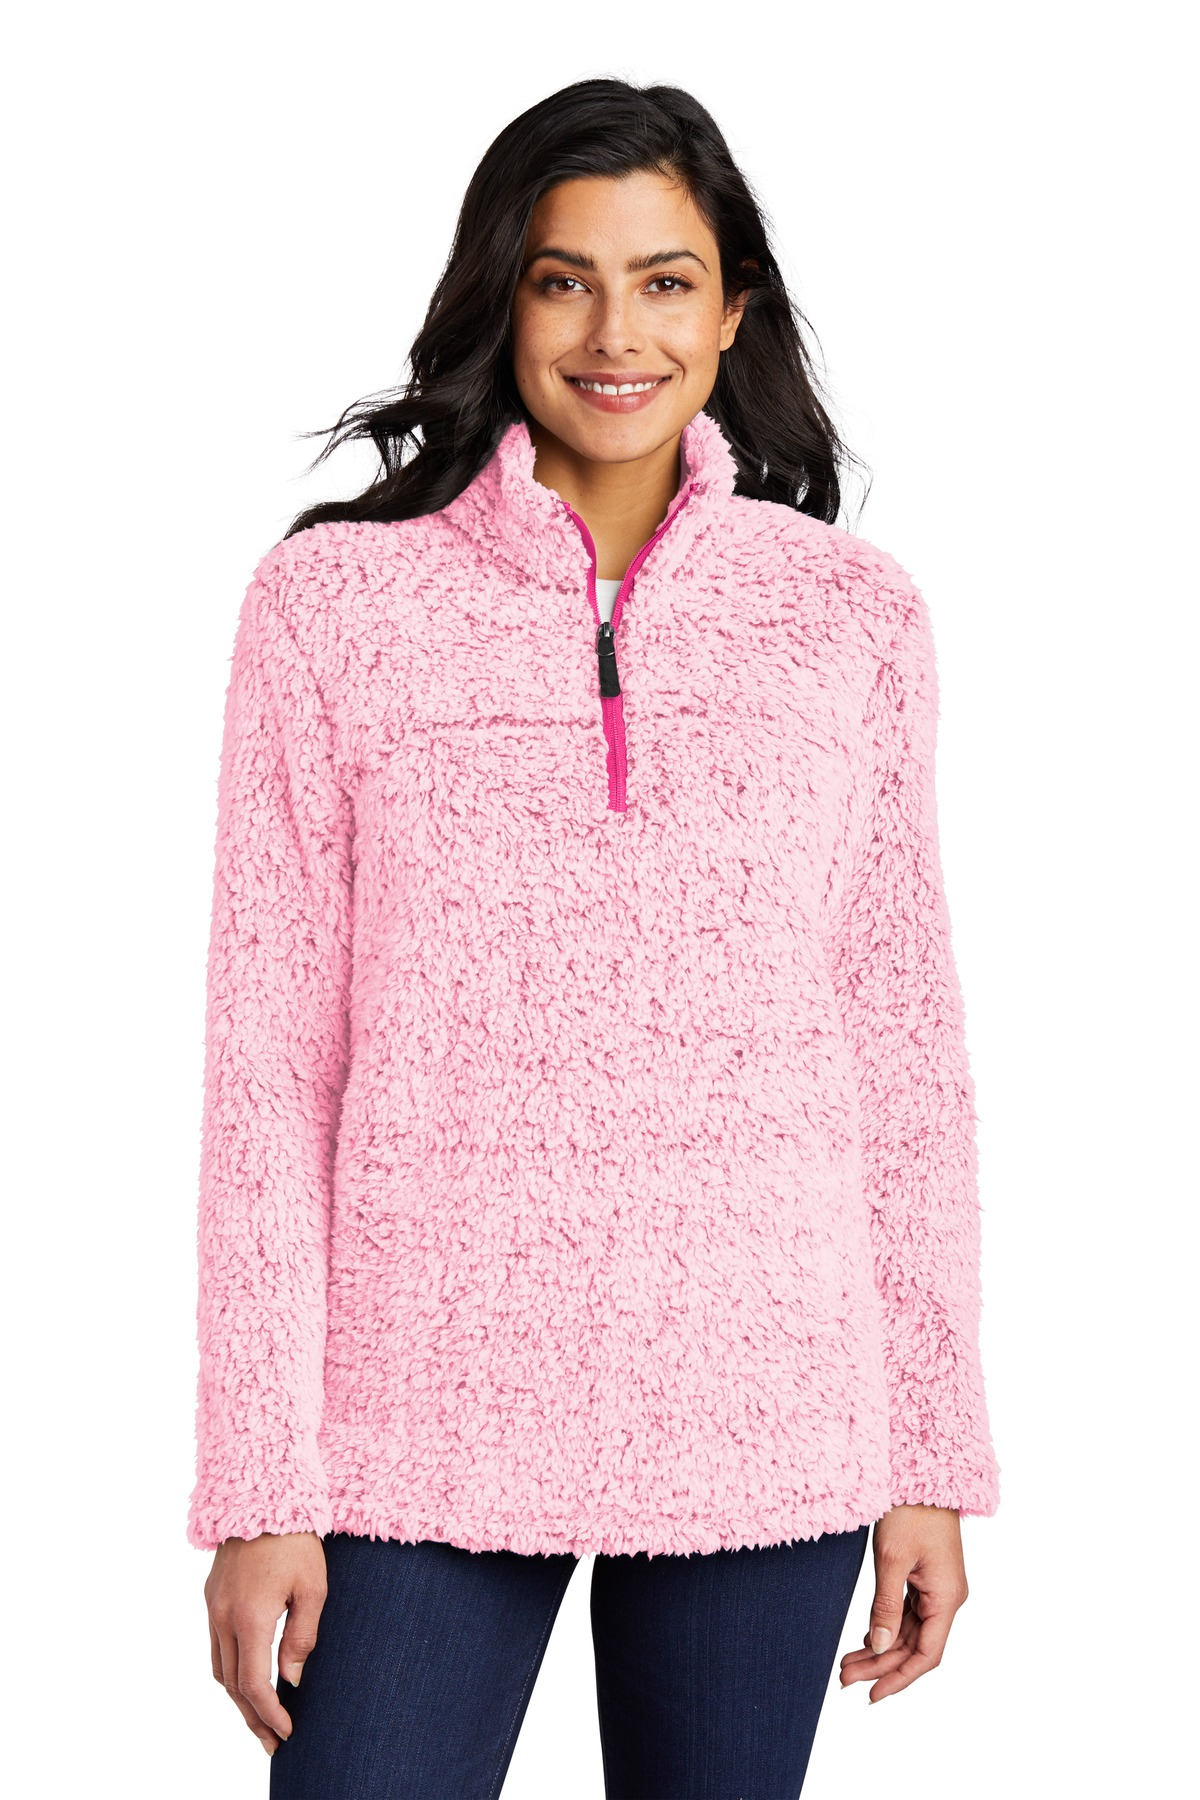 Port Authority  ®   Ladies Cozy 1/4-Zip Fleece L130 - Pop Raspberry Heather